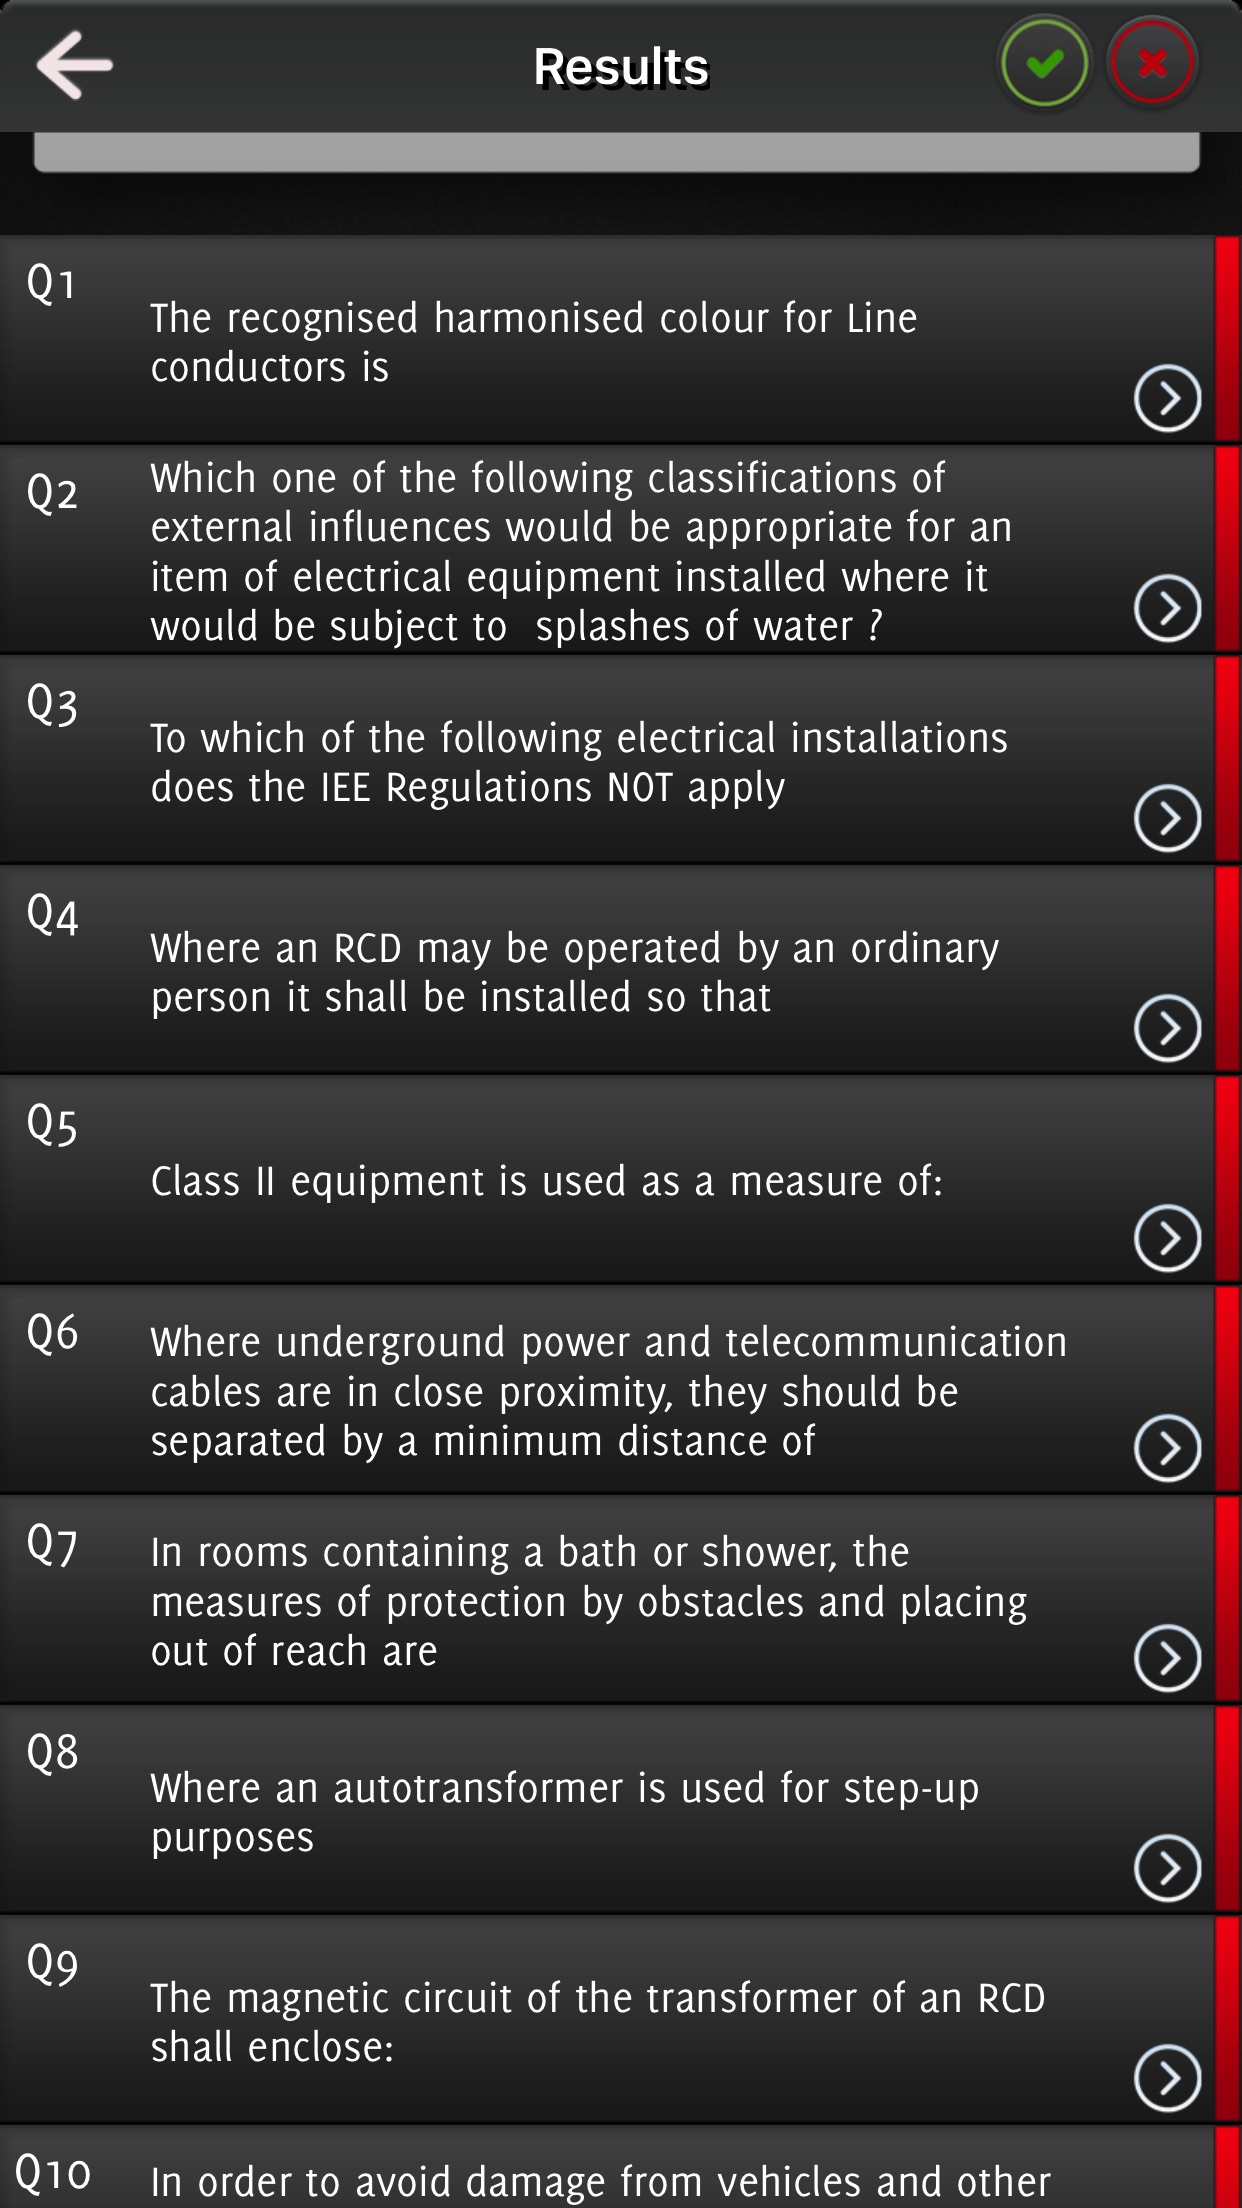 chapter 2 and 3 answer key Concept, predevelopment, design and pre-construction, construction, and financing the answer key how to plan, develop, and finance your charter school this guide discusses financing in detail in chapter 5 financing: important timing considerations | chapter 5 chapter 2 chapter 3 chapter 4 pages 3-13.